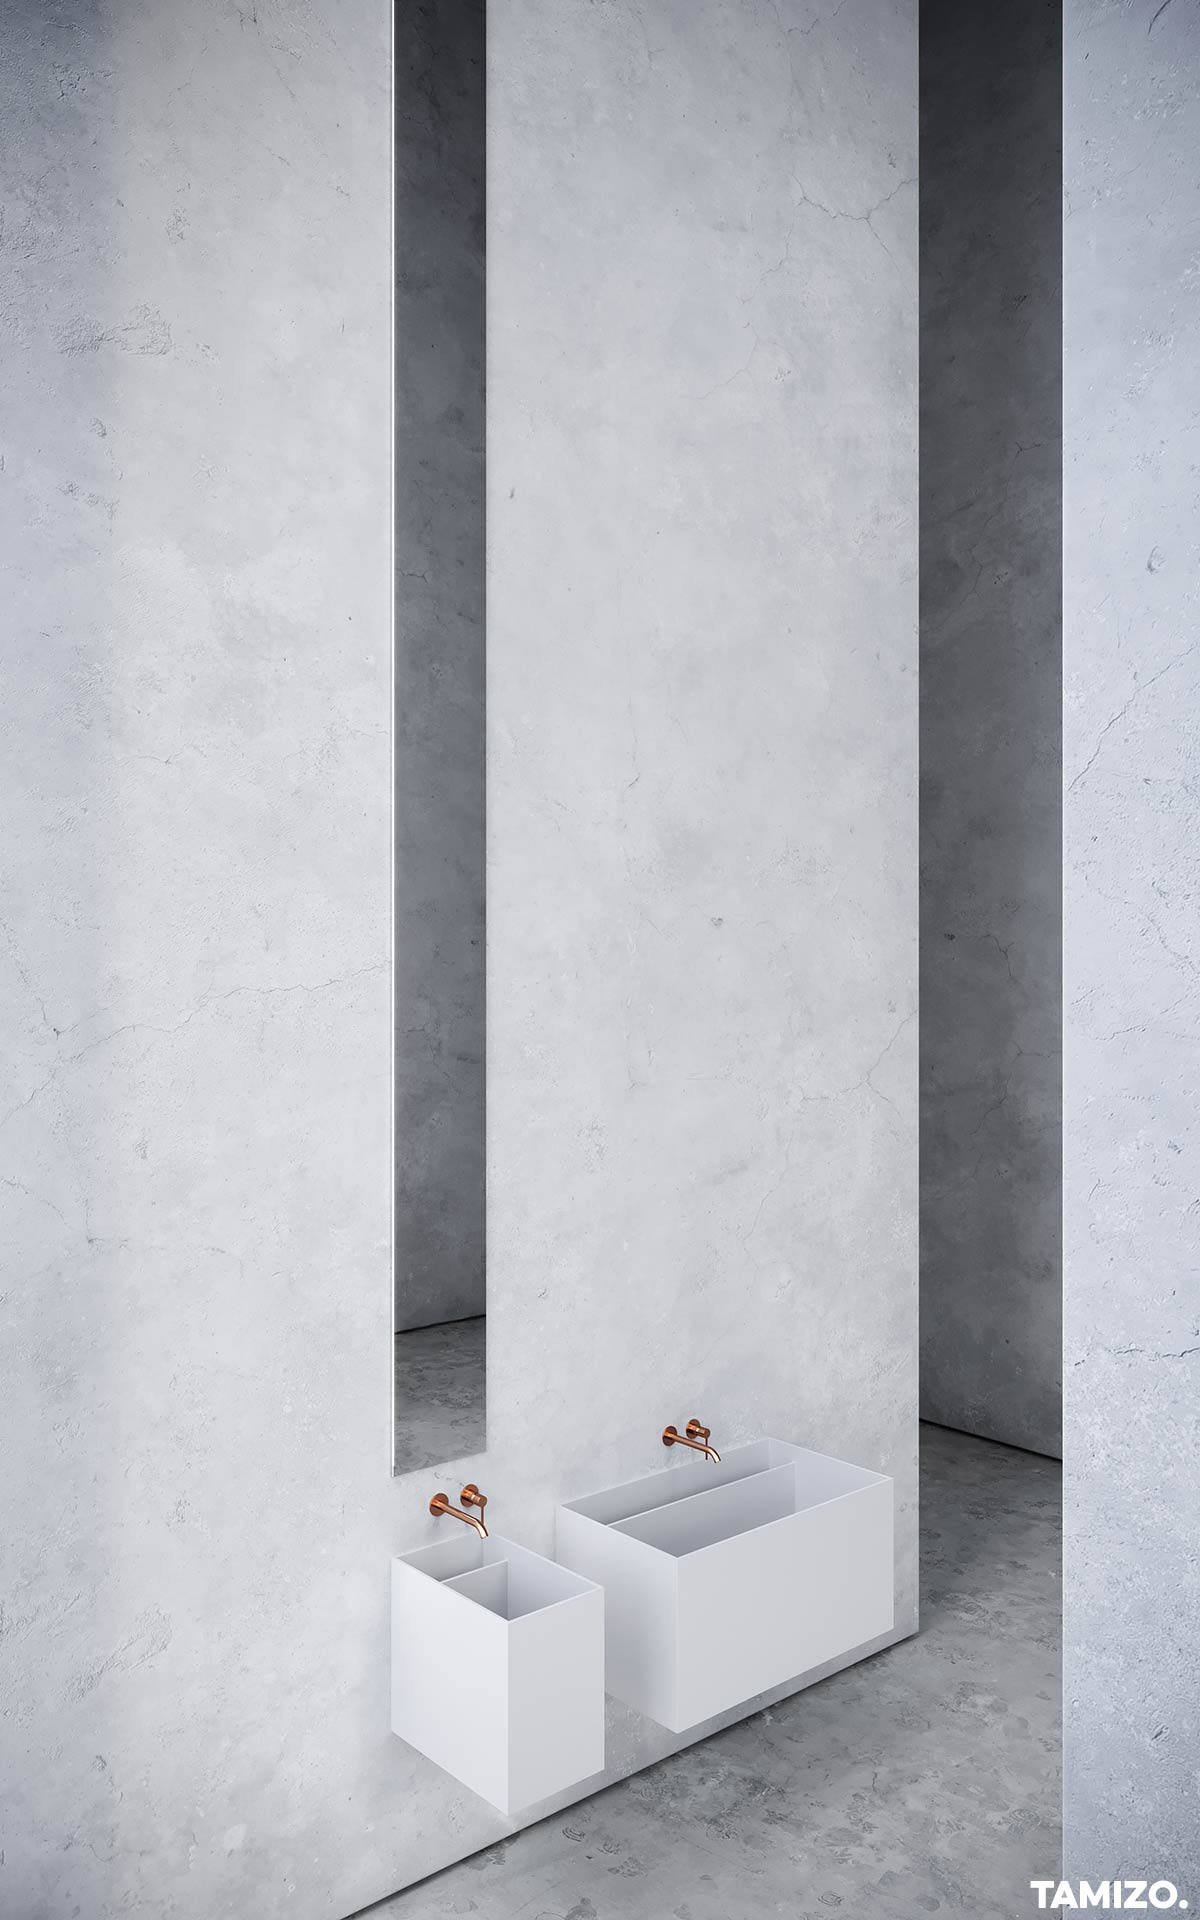 minimall_minimallone_ontheedge_bathroom_bathtub_washbasin_industrial_design_project_06